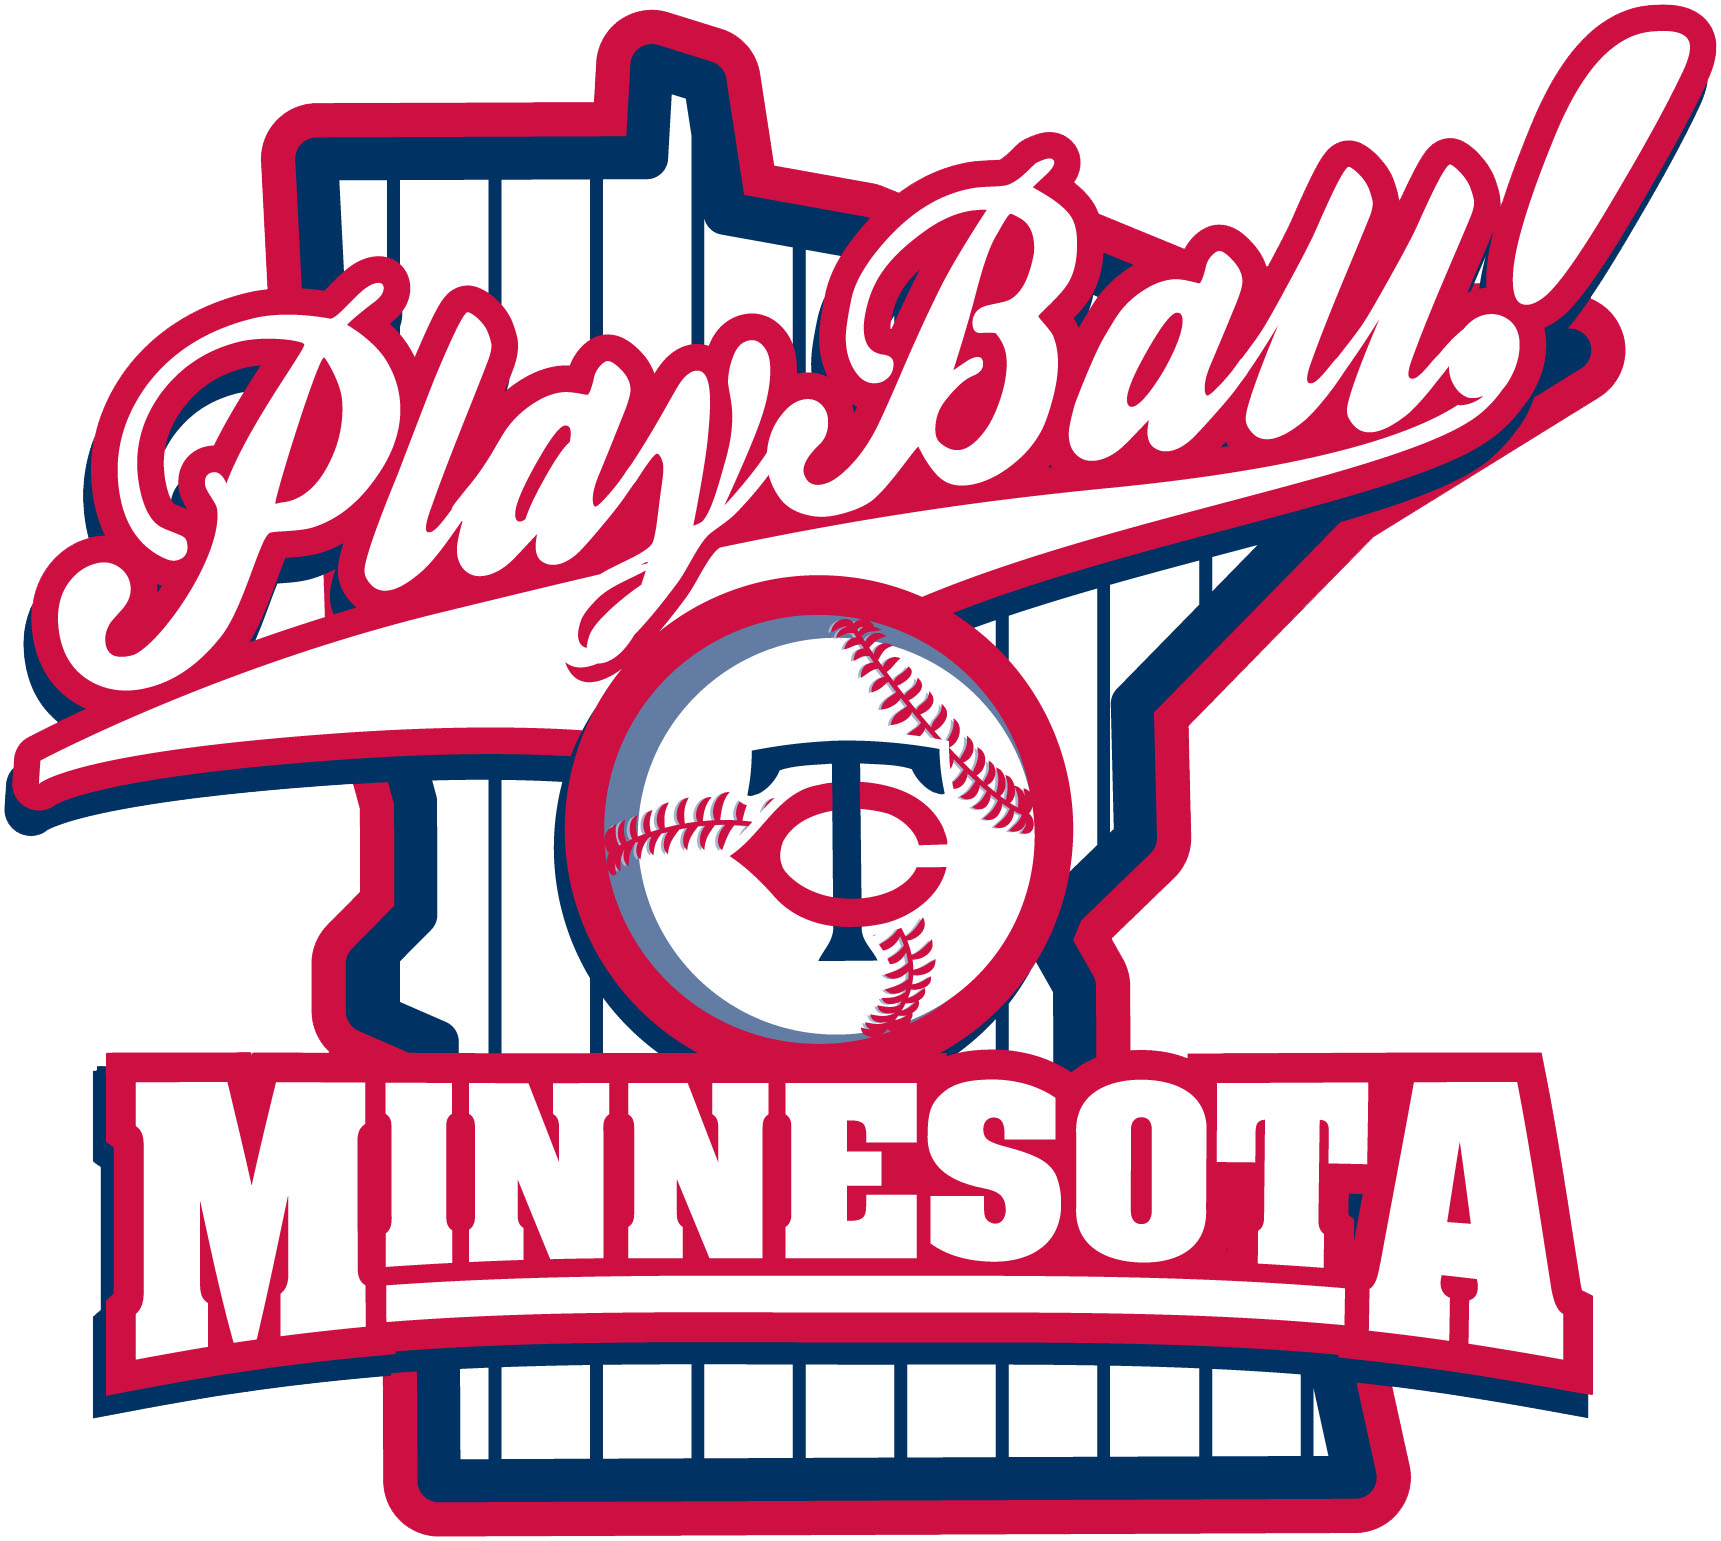 Minnesota Twins Logo Png images collection for free download.